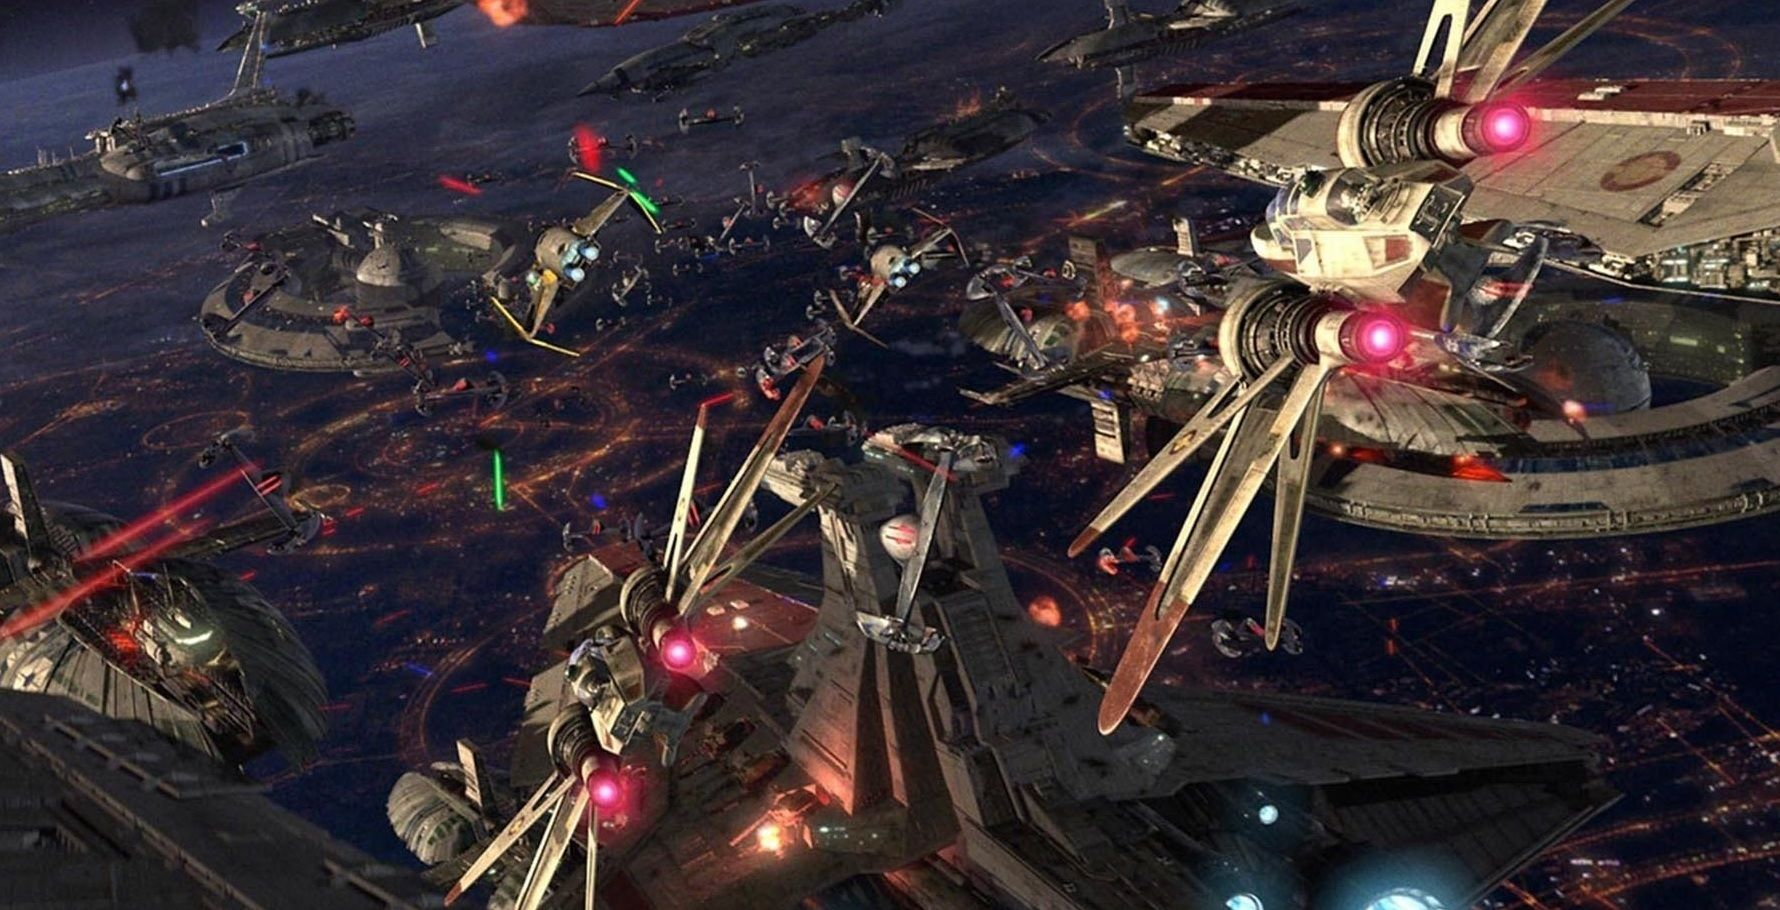 The Battle of Coruscant in Star Wars Episode III Revenge of the Sith